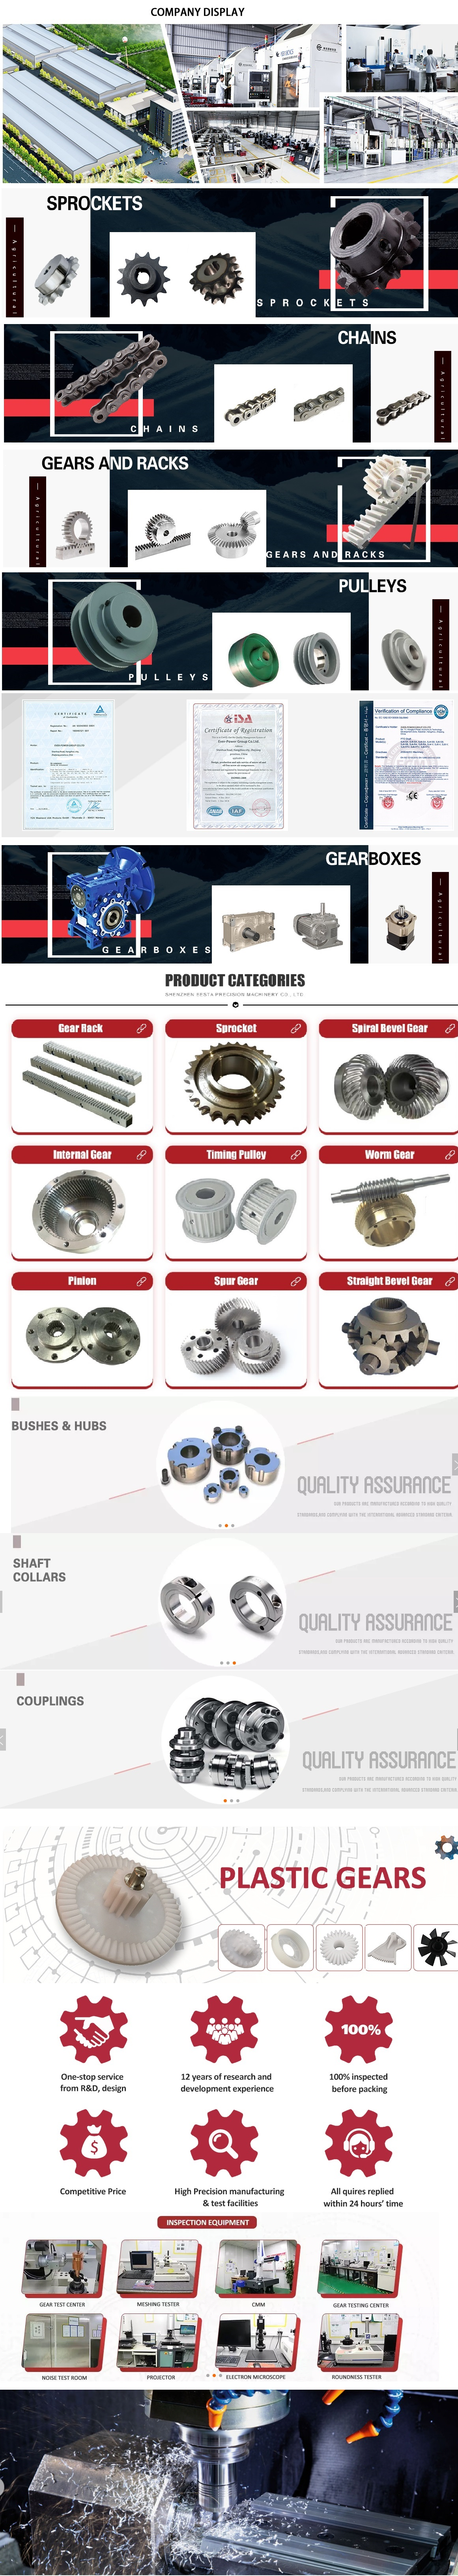 China manufacturer & factory supplier for China  in Daejon Republic of Korea  manufacturer Straight Mini Bevel Gear Wheel With high quality best price & service